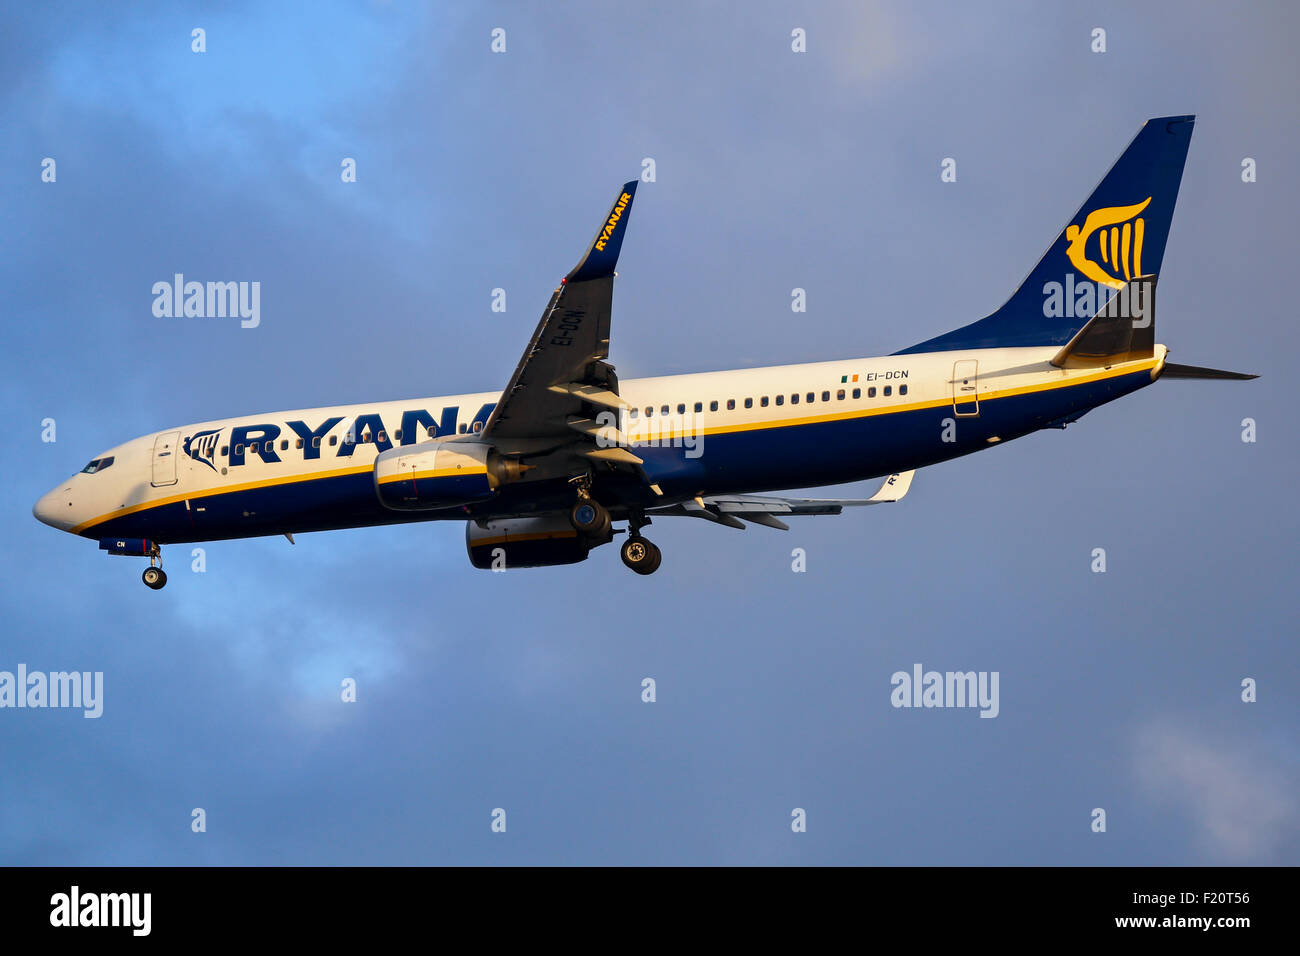 Ryanair Boeing 737-800 approaches runway 23R at Manchester airport. - Stock Image